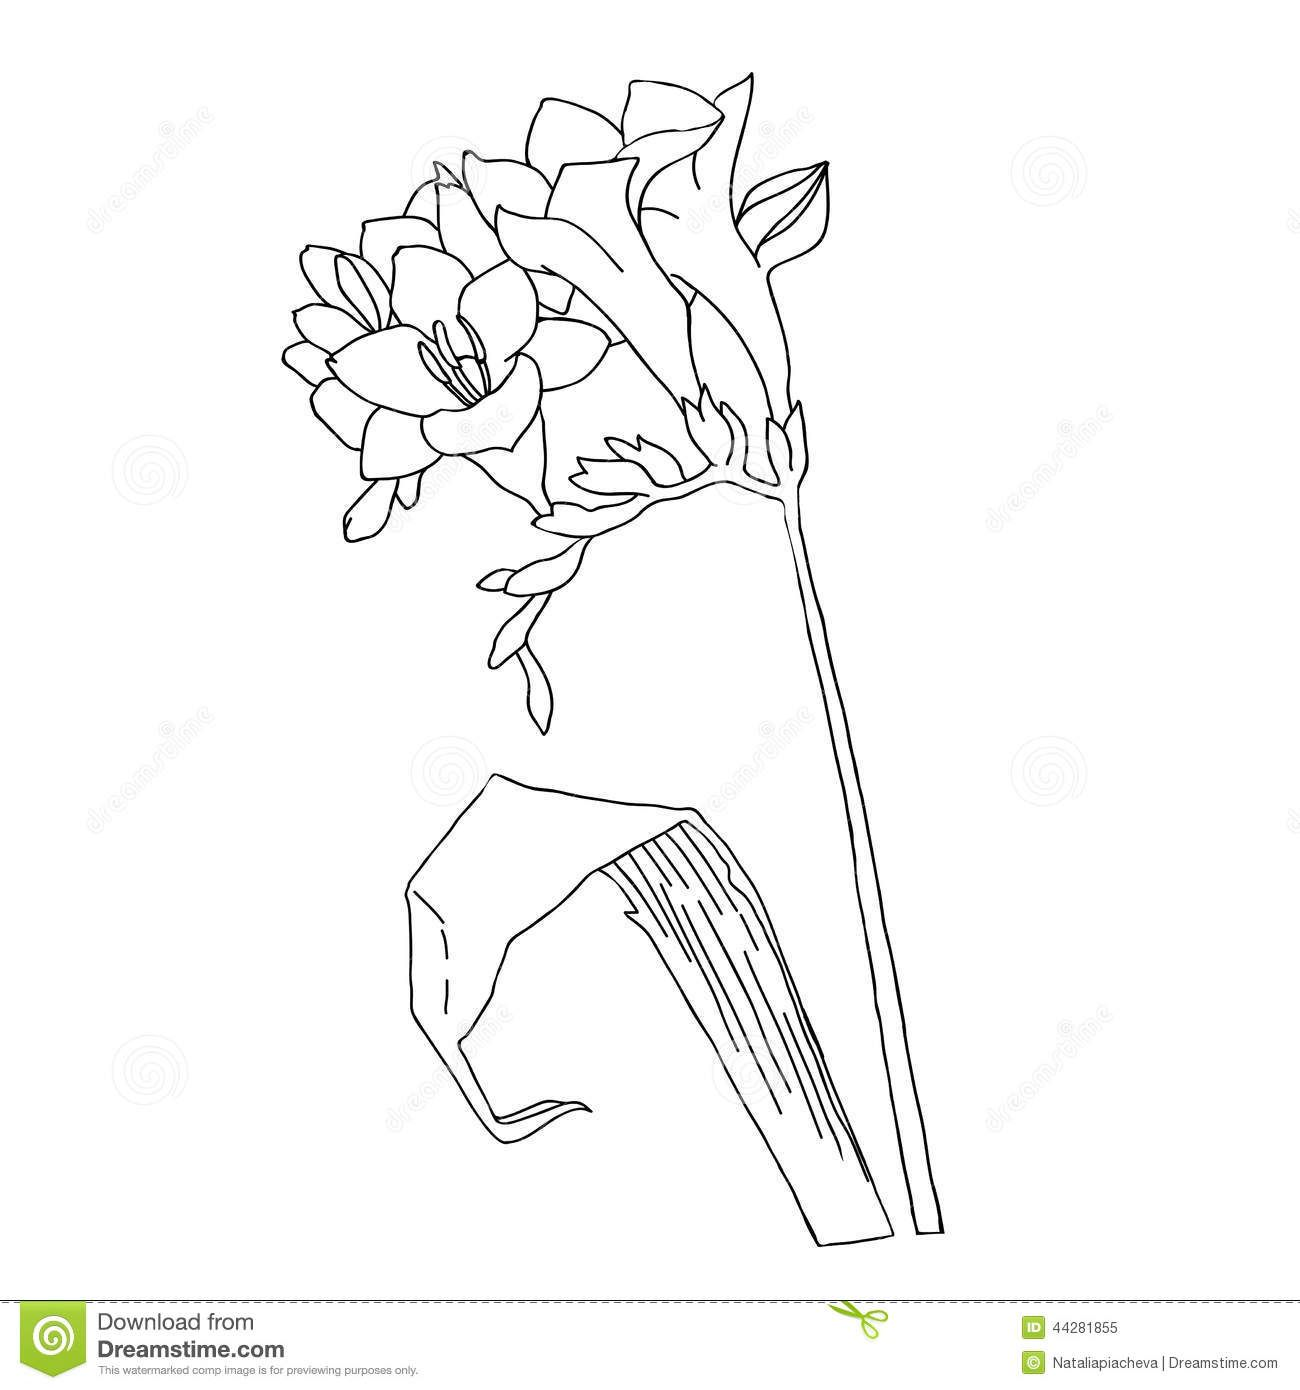 Freesia Illustration Freesia Sketch Black And White Stock Vector Image 44281855 Line Art Vector Illustration Vector Illustration